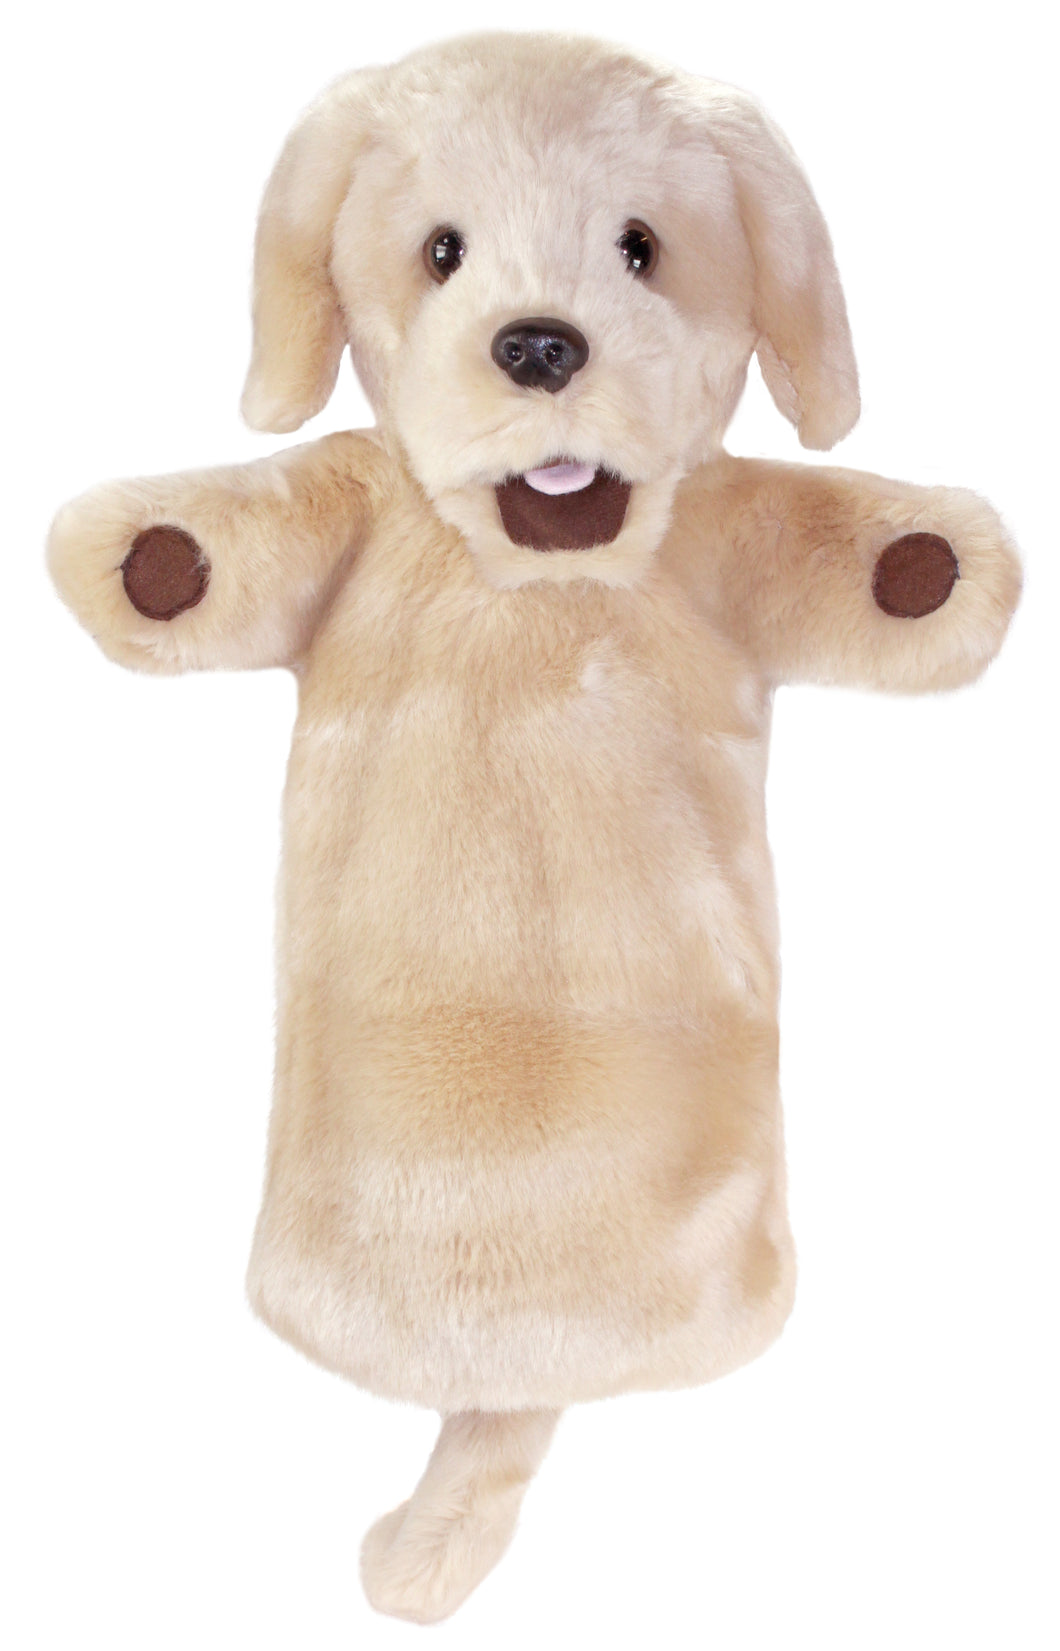 P372-PC006016-marionnette-Labrador-jaune-The-Puppet-Company-Long-Sleeved-Glove-Puppets